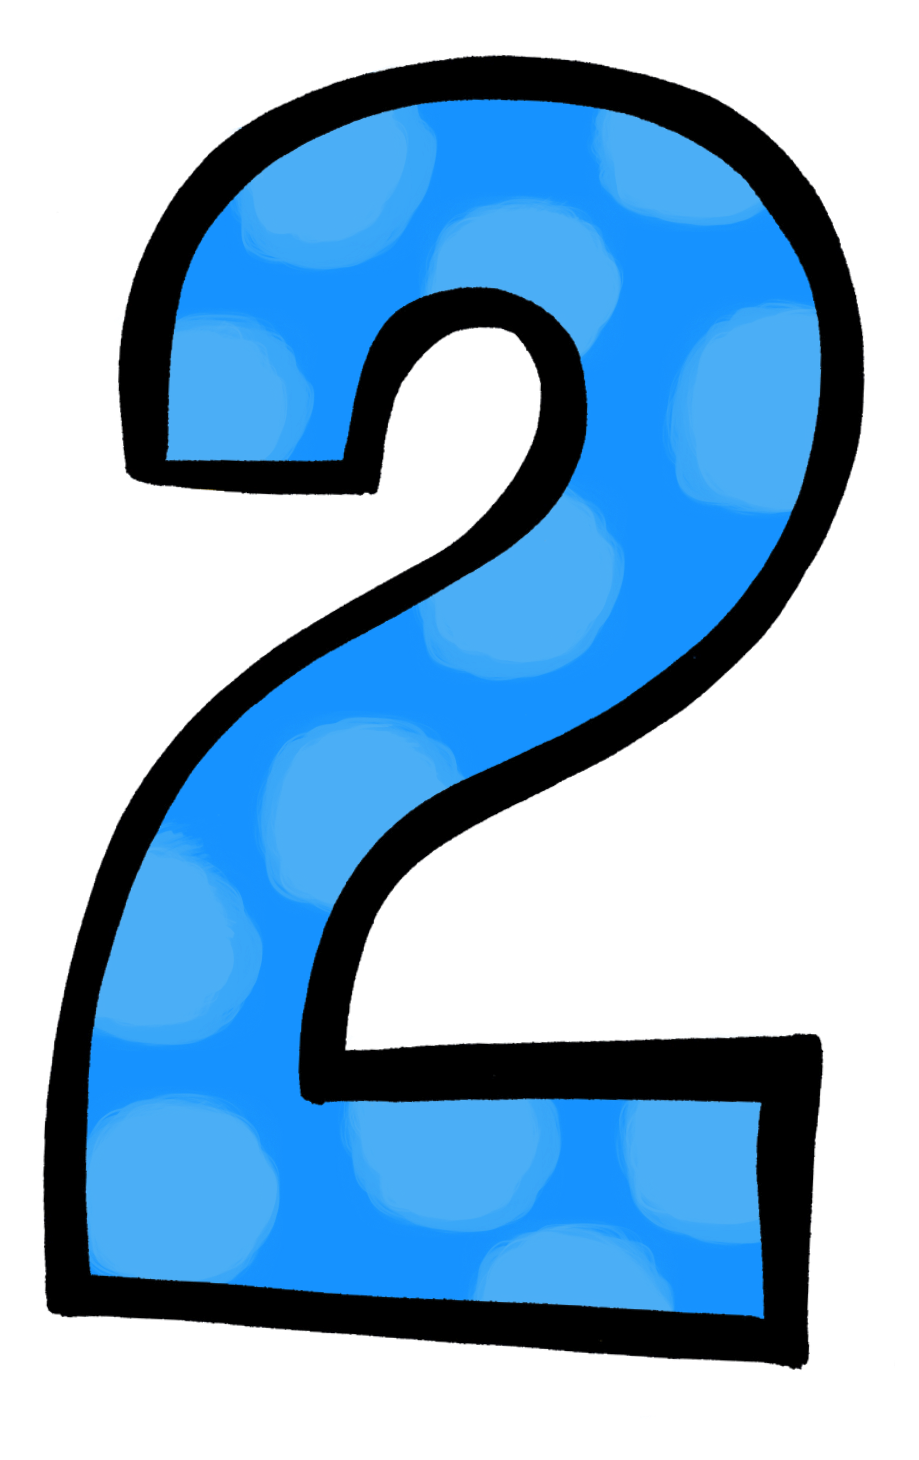 Number 2 clipart green. Images clipartioncom five for